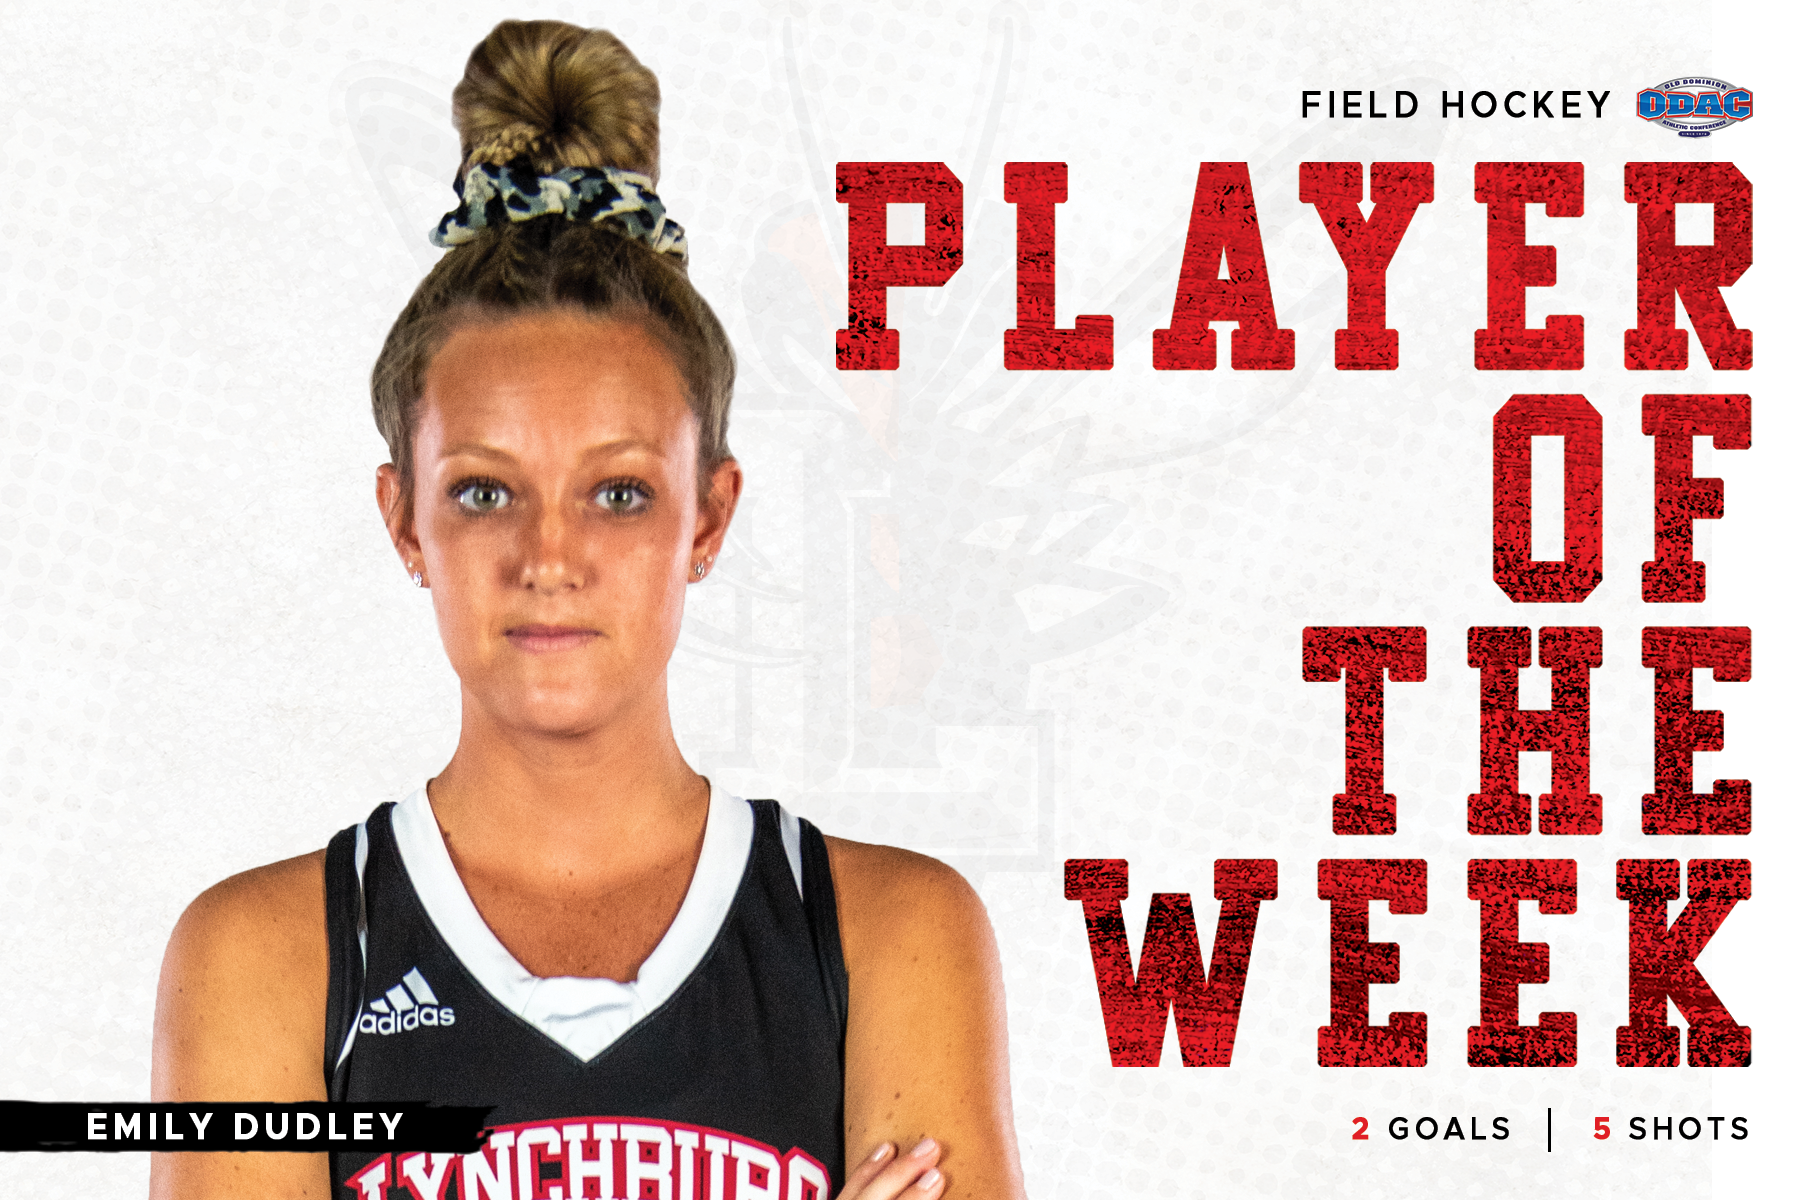 Emily Dudley in black uniform standing arms crossed. Image cut out on top of white background with red text: Player of the week.